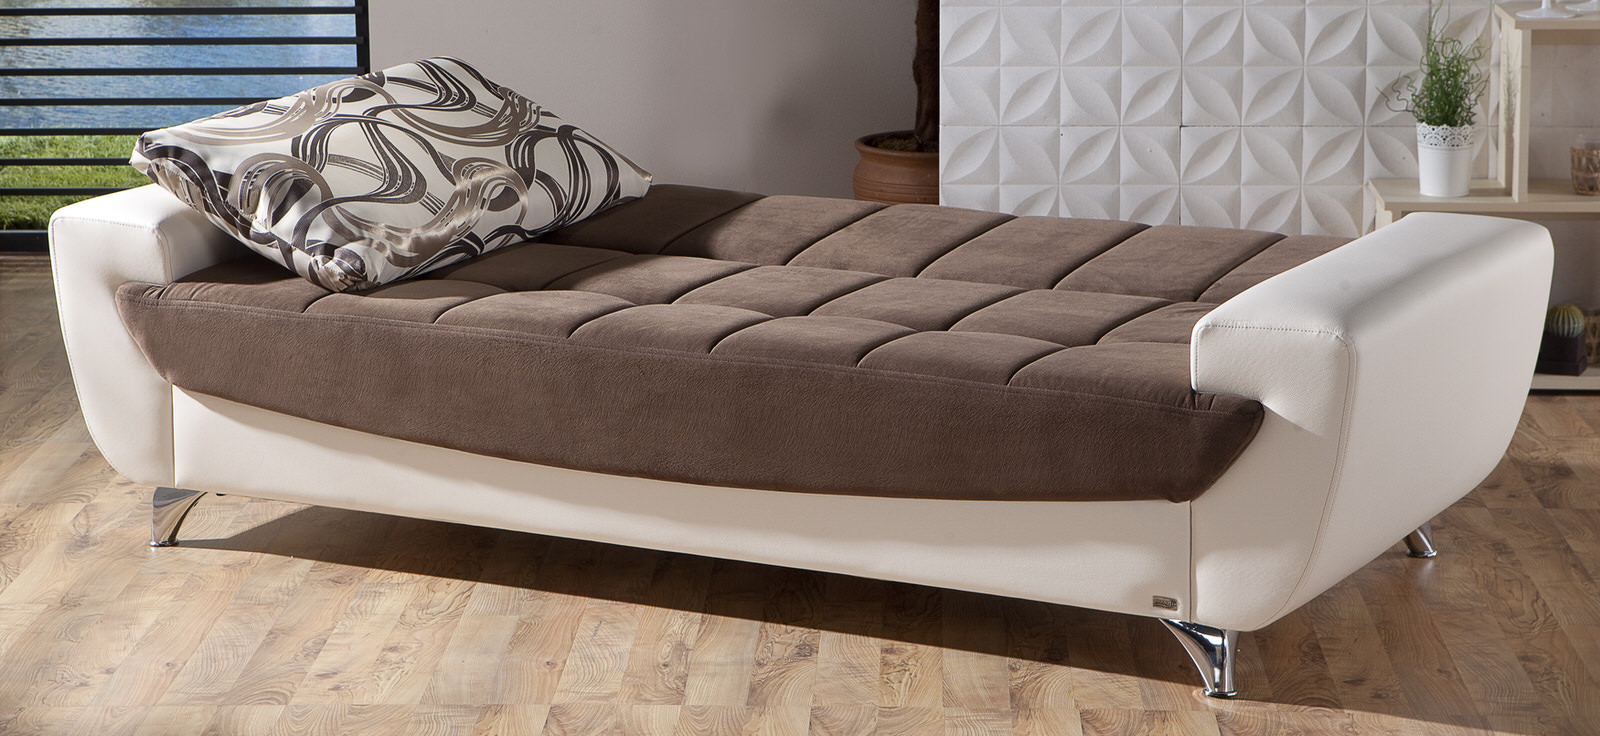 High Quality Sofa Beds Ligne Roset Official Site